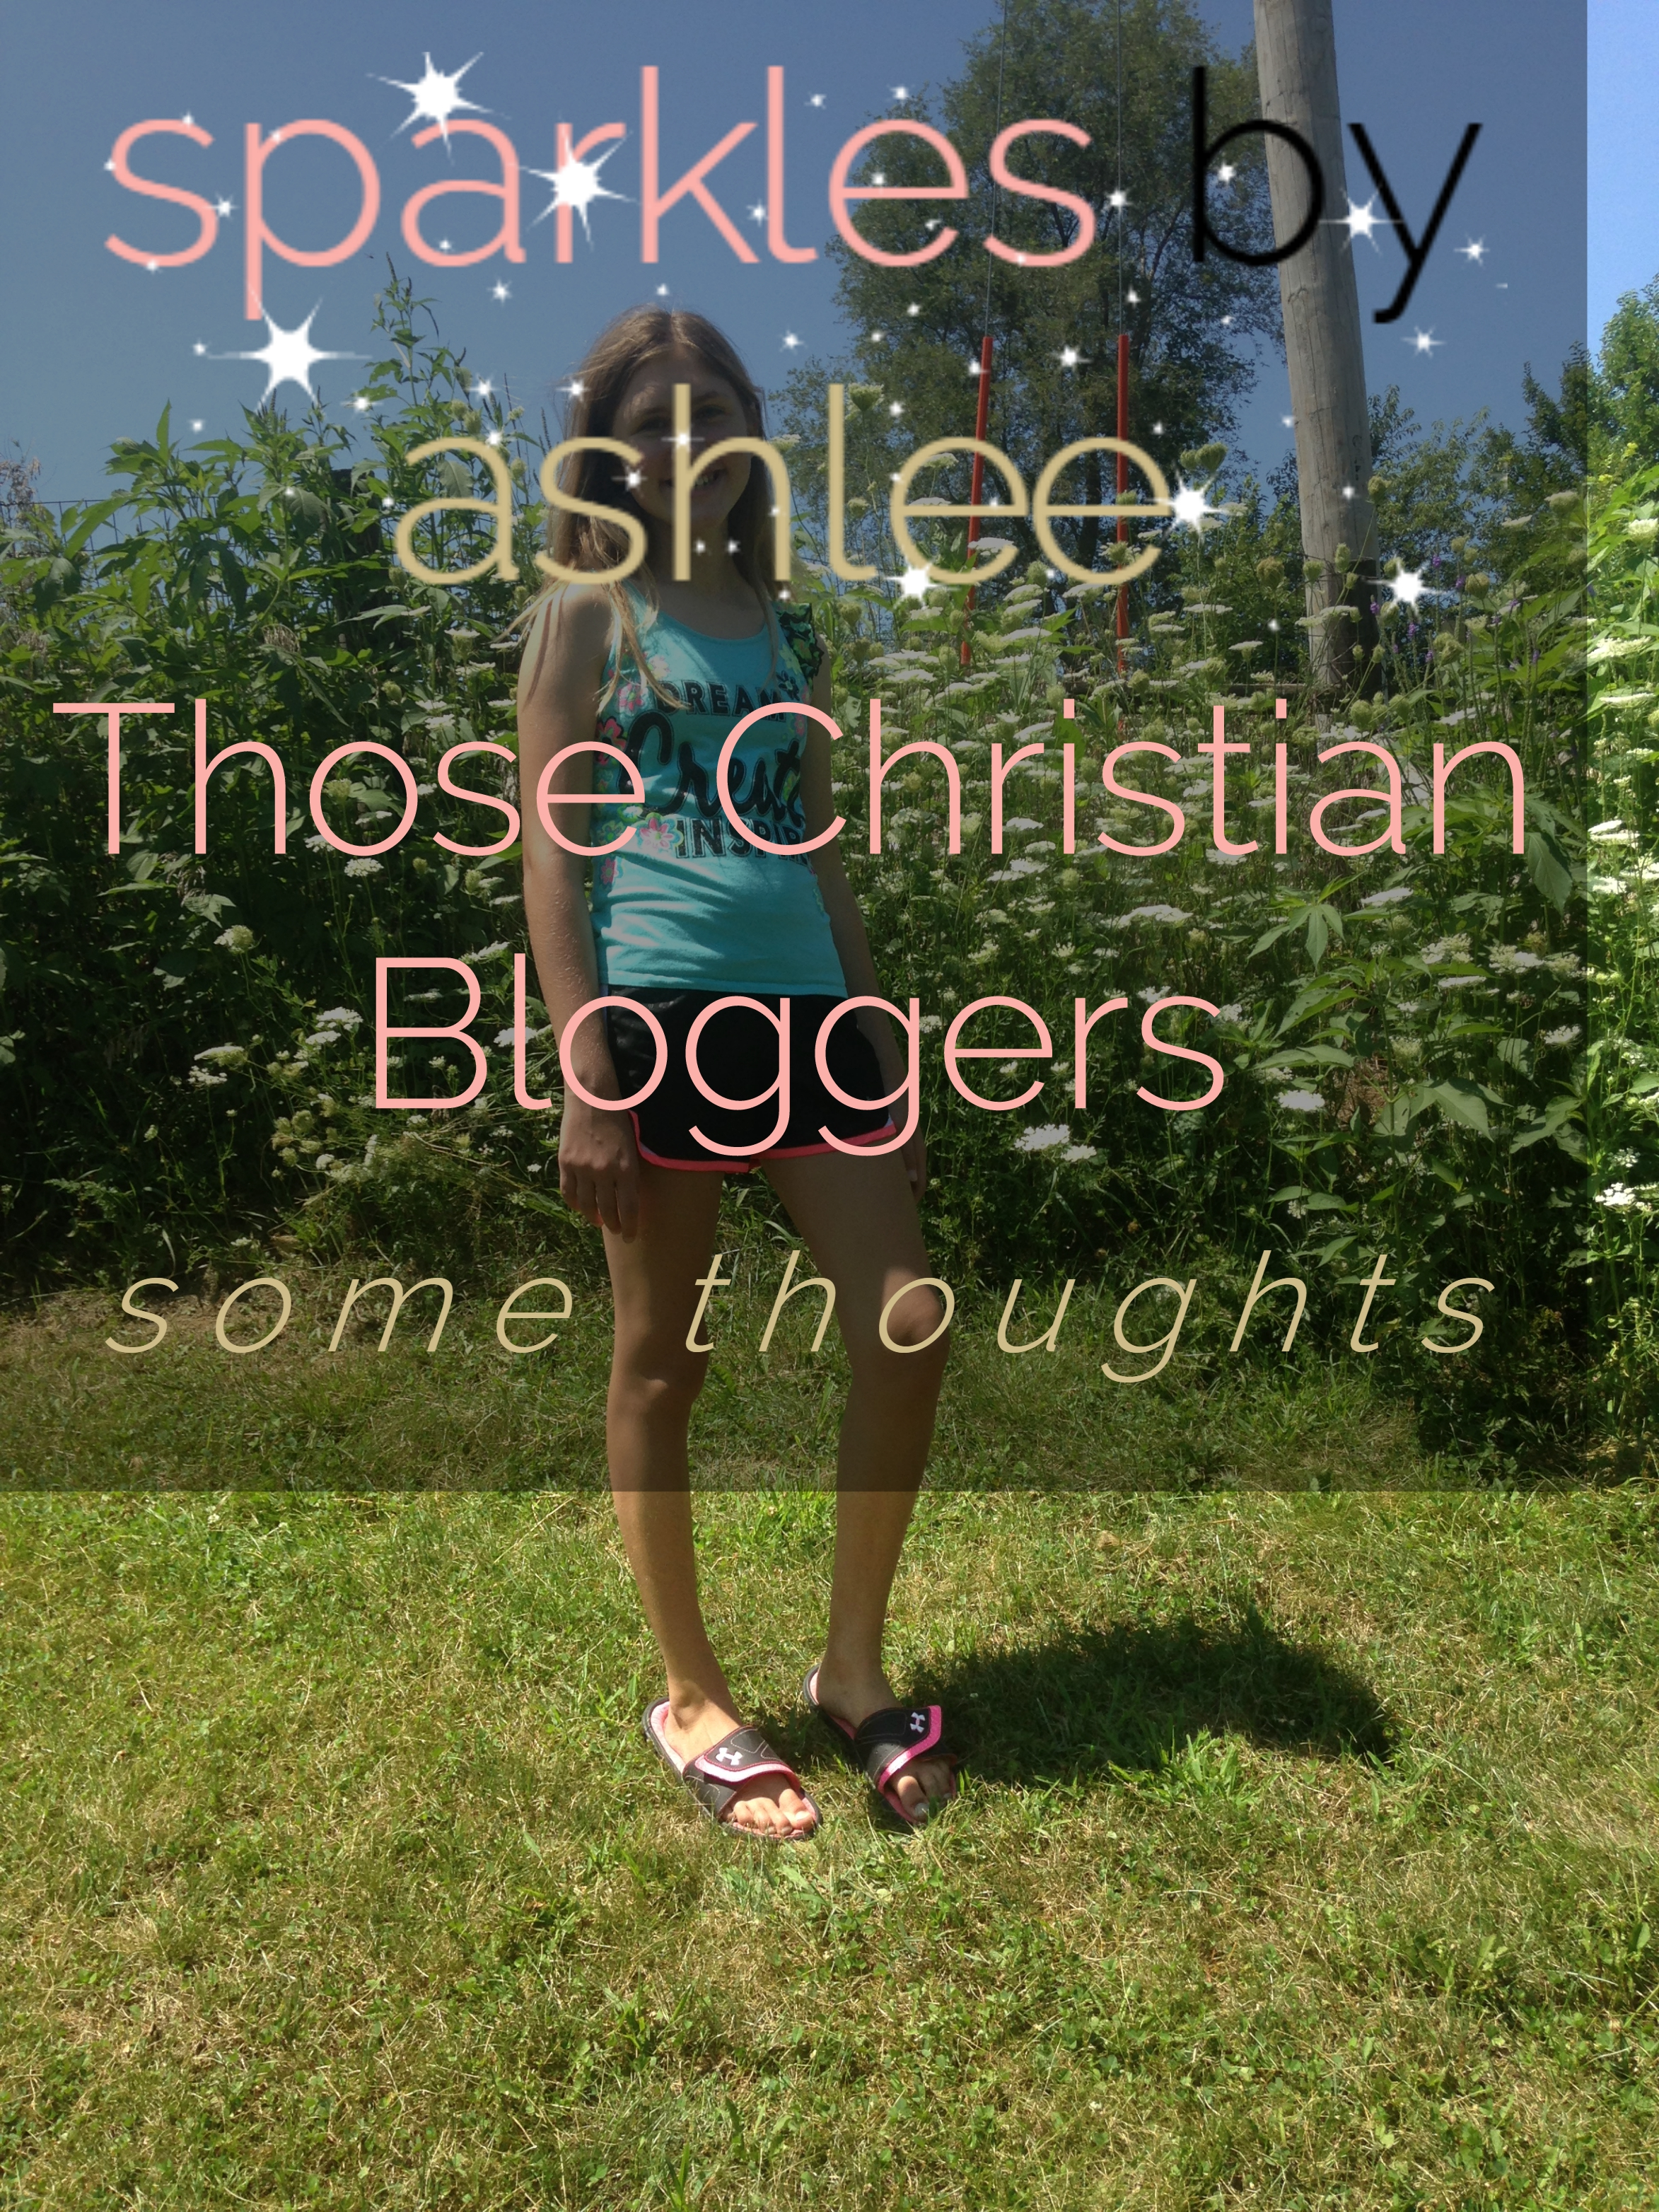 Those-Christian-Bloggers-Sparkles-by-Ashlee.jpg